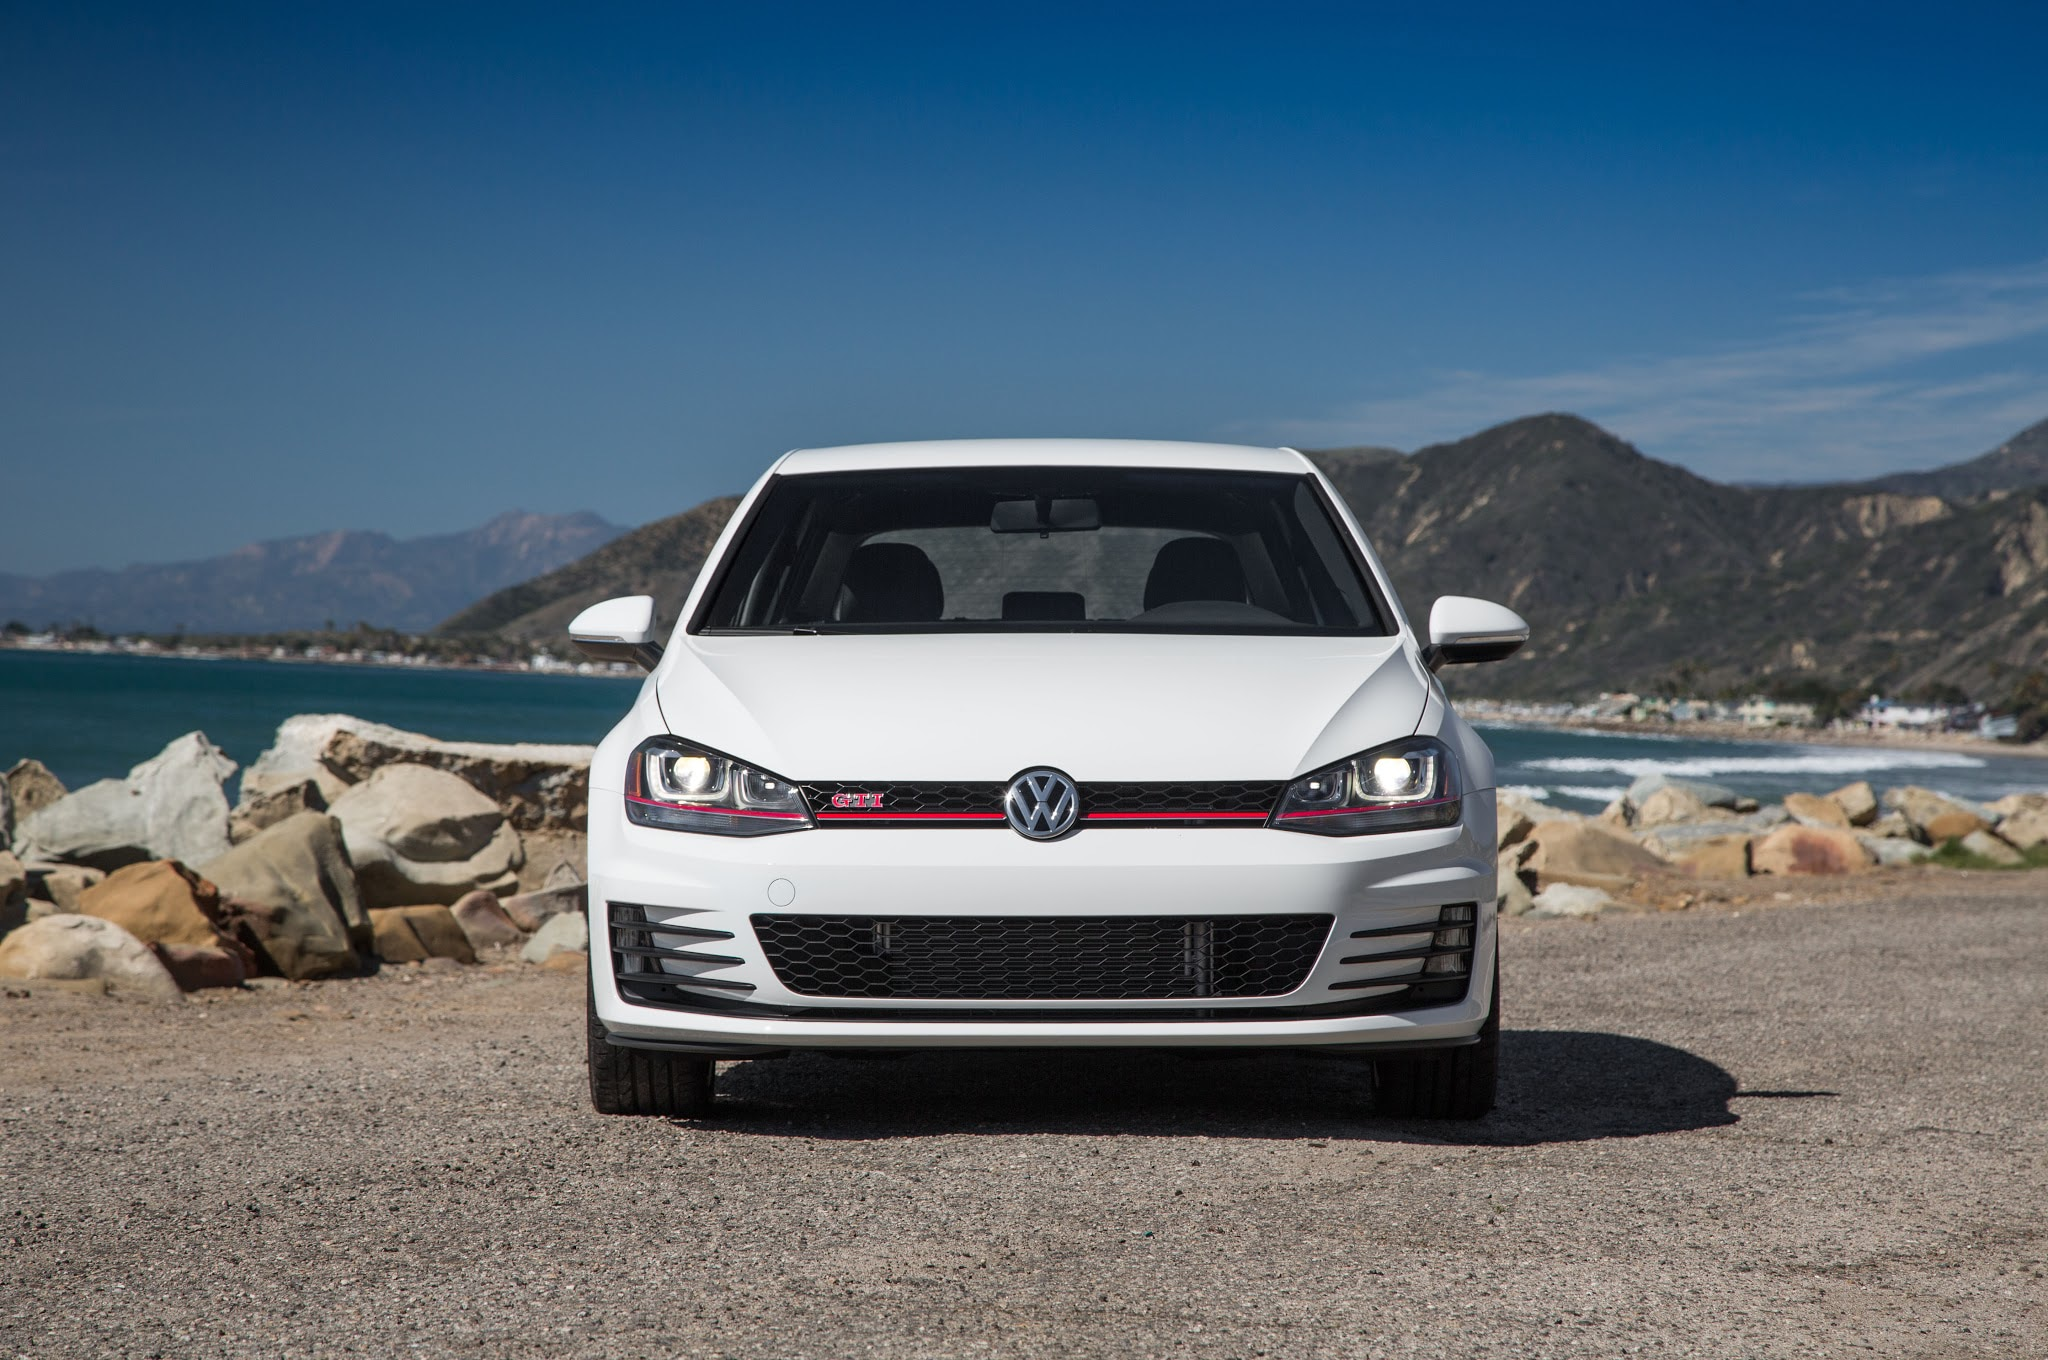 2015 Volkswagen Golf GTI - Manual or DSG?